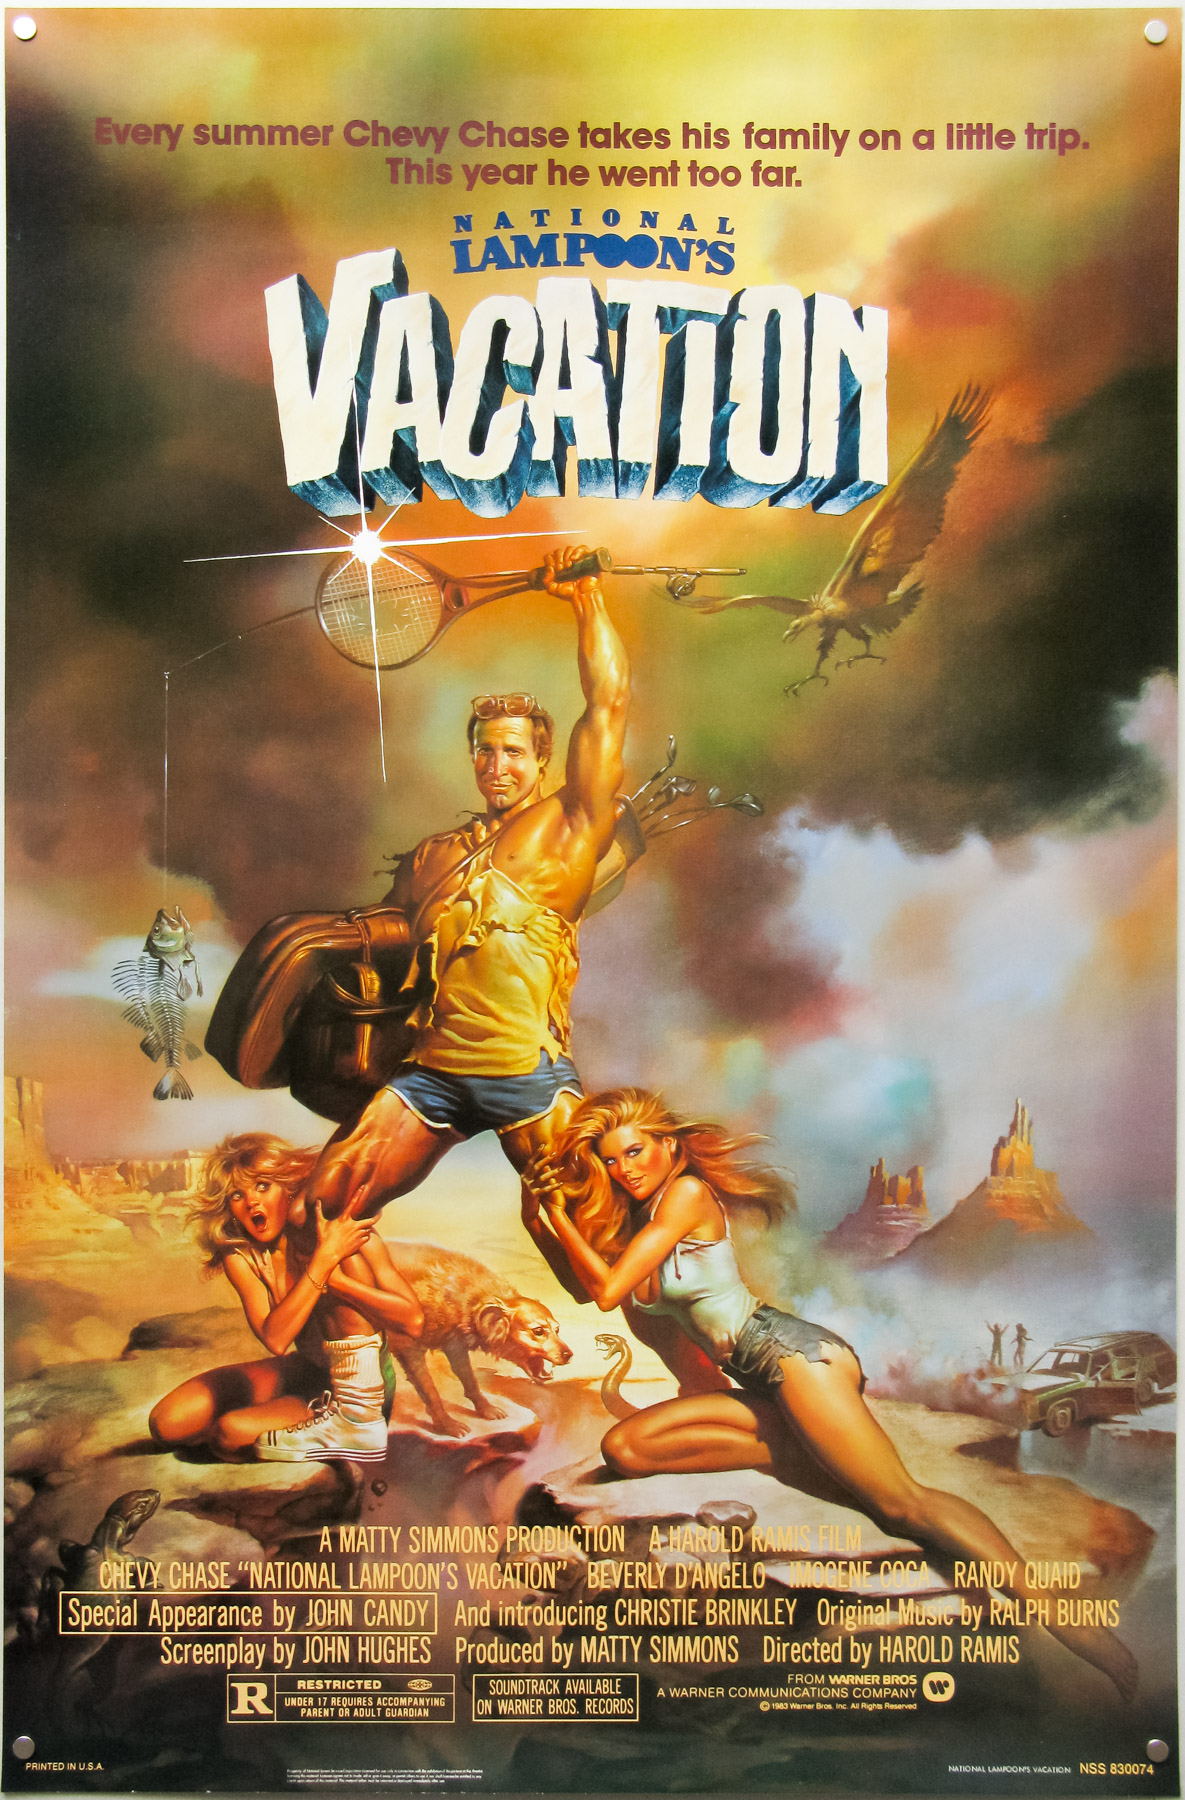 National Lampoon's Vacation / One Sheet / USA